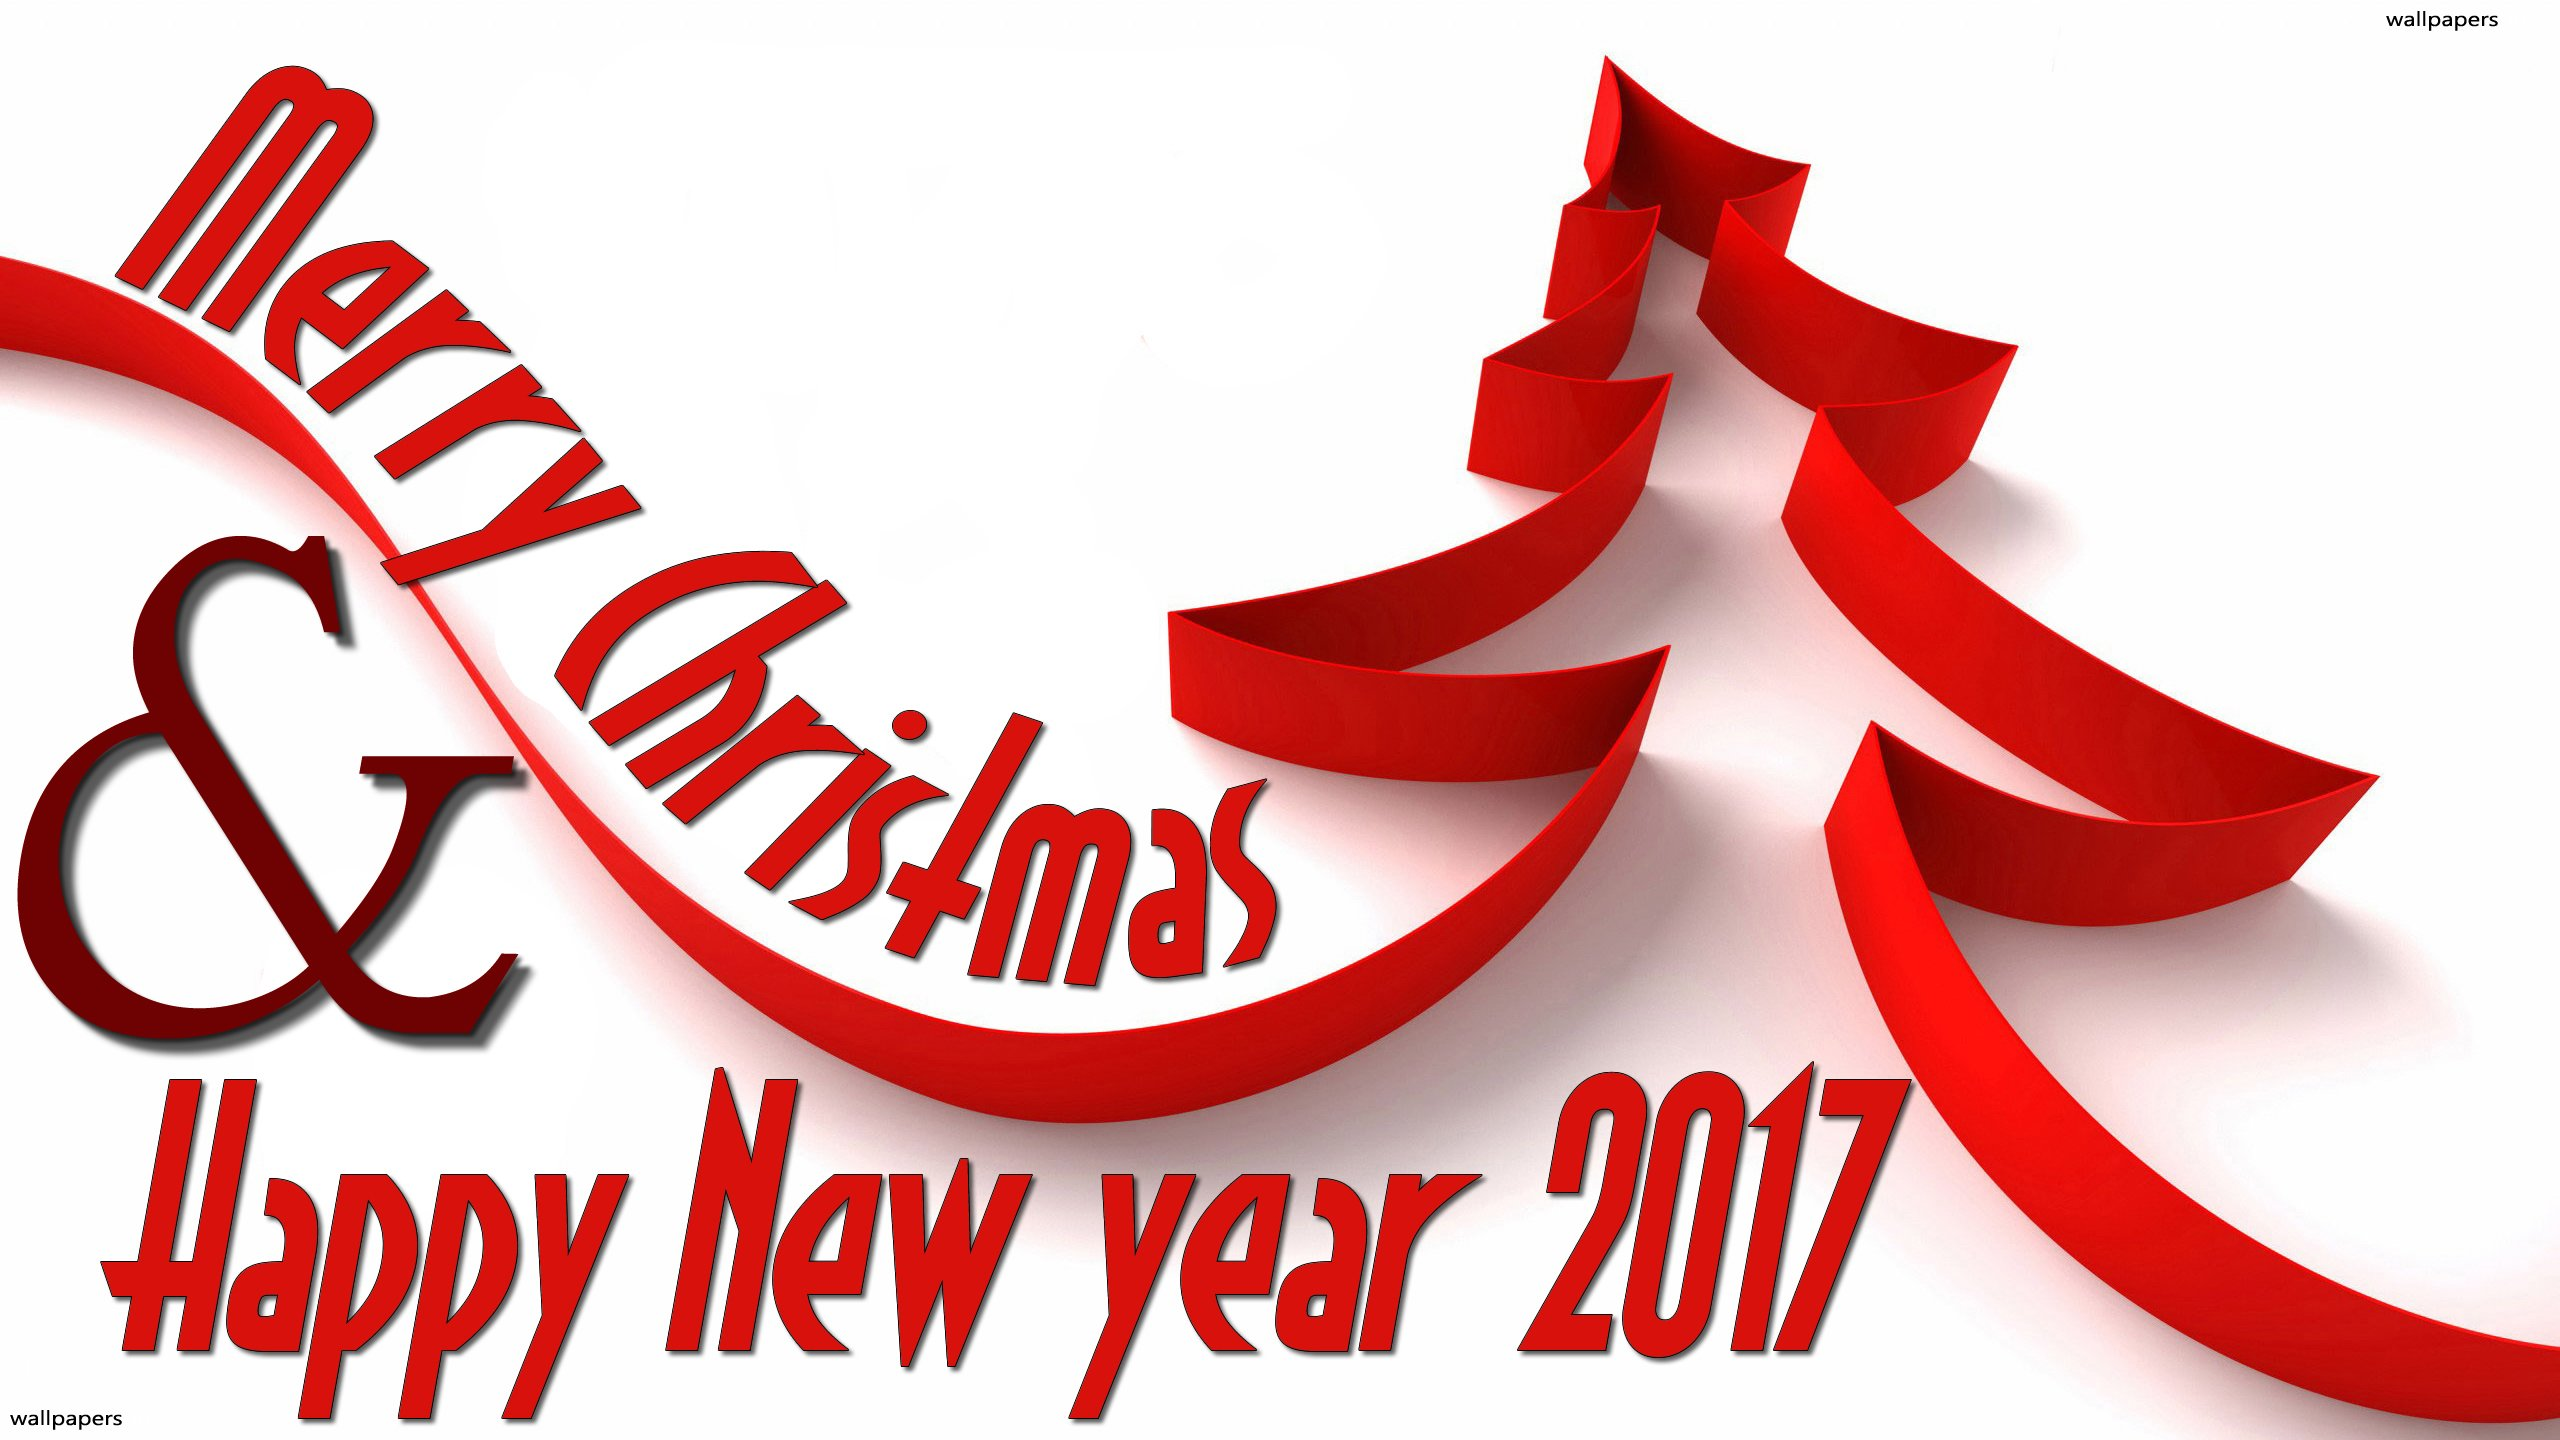 Happy New Year 2019 Ka Video With Merry Christmas And - Christmas & New Year Wishes 2018 , HD Wallpaper & Backgrounds